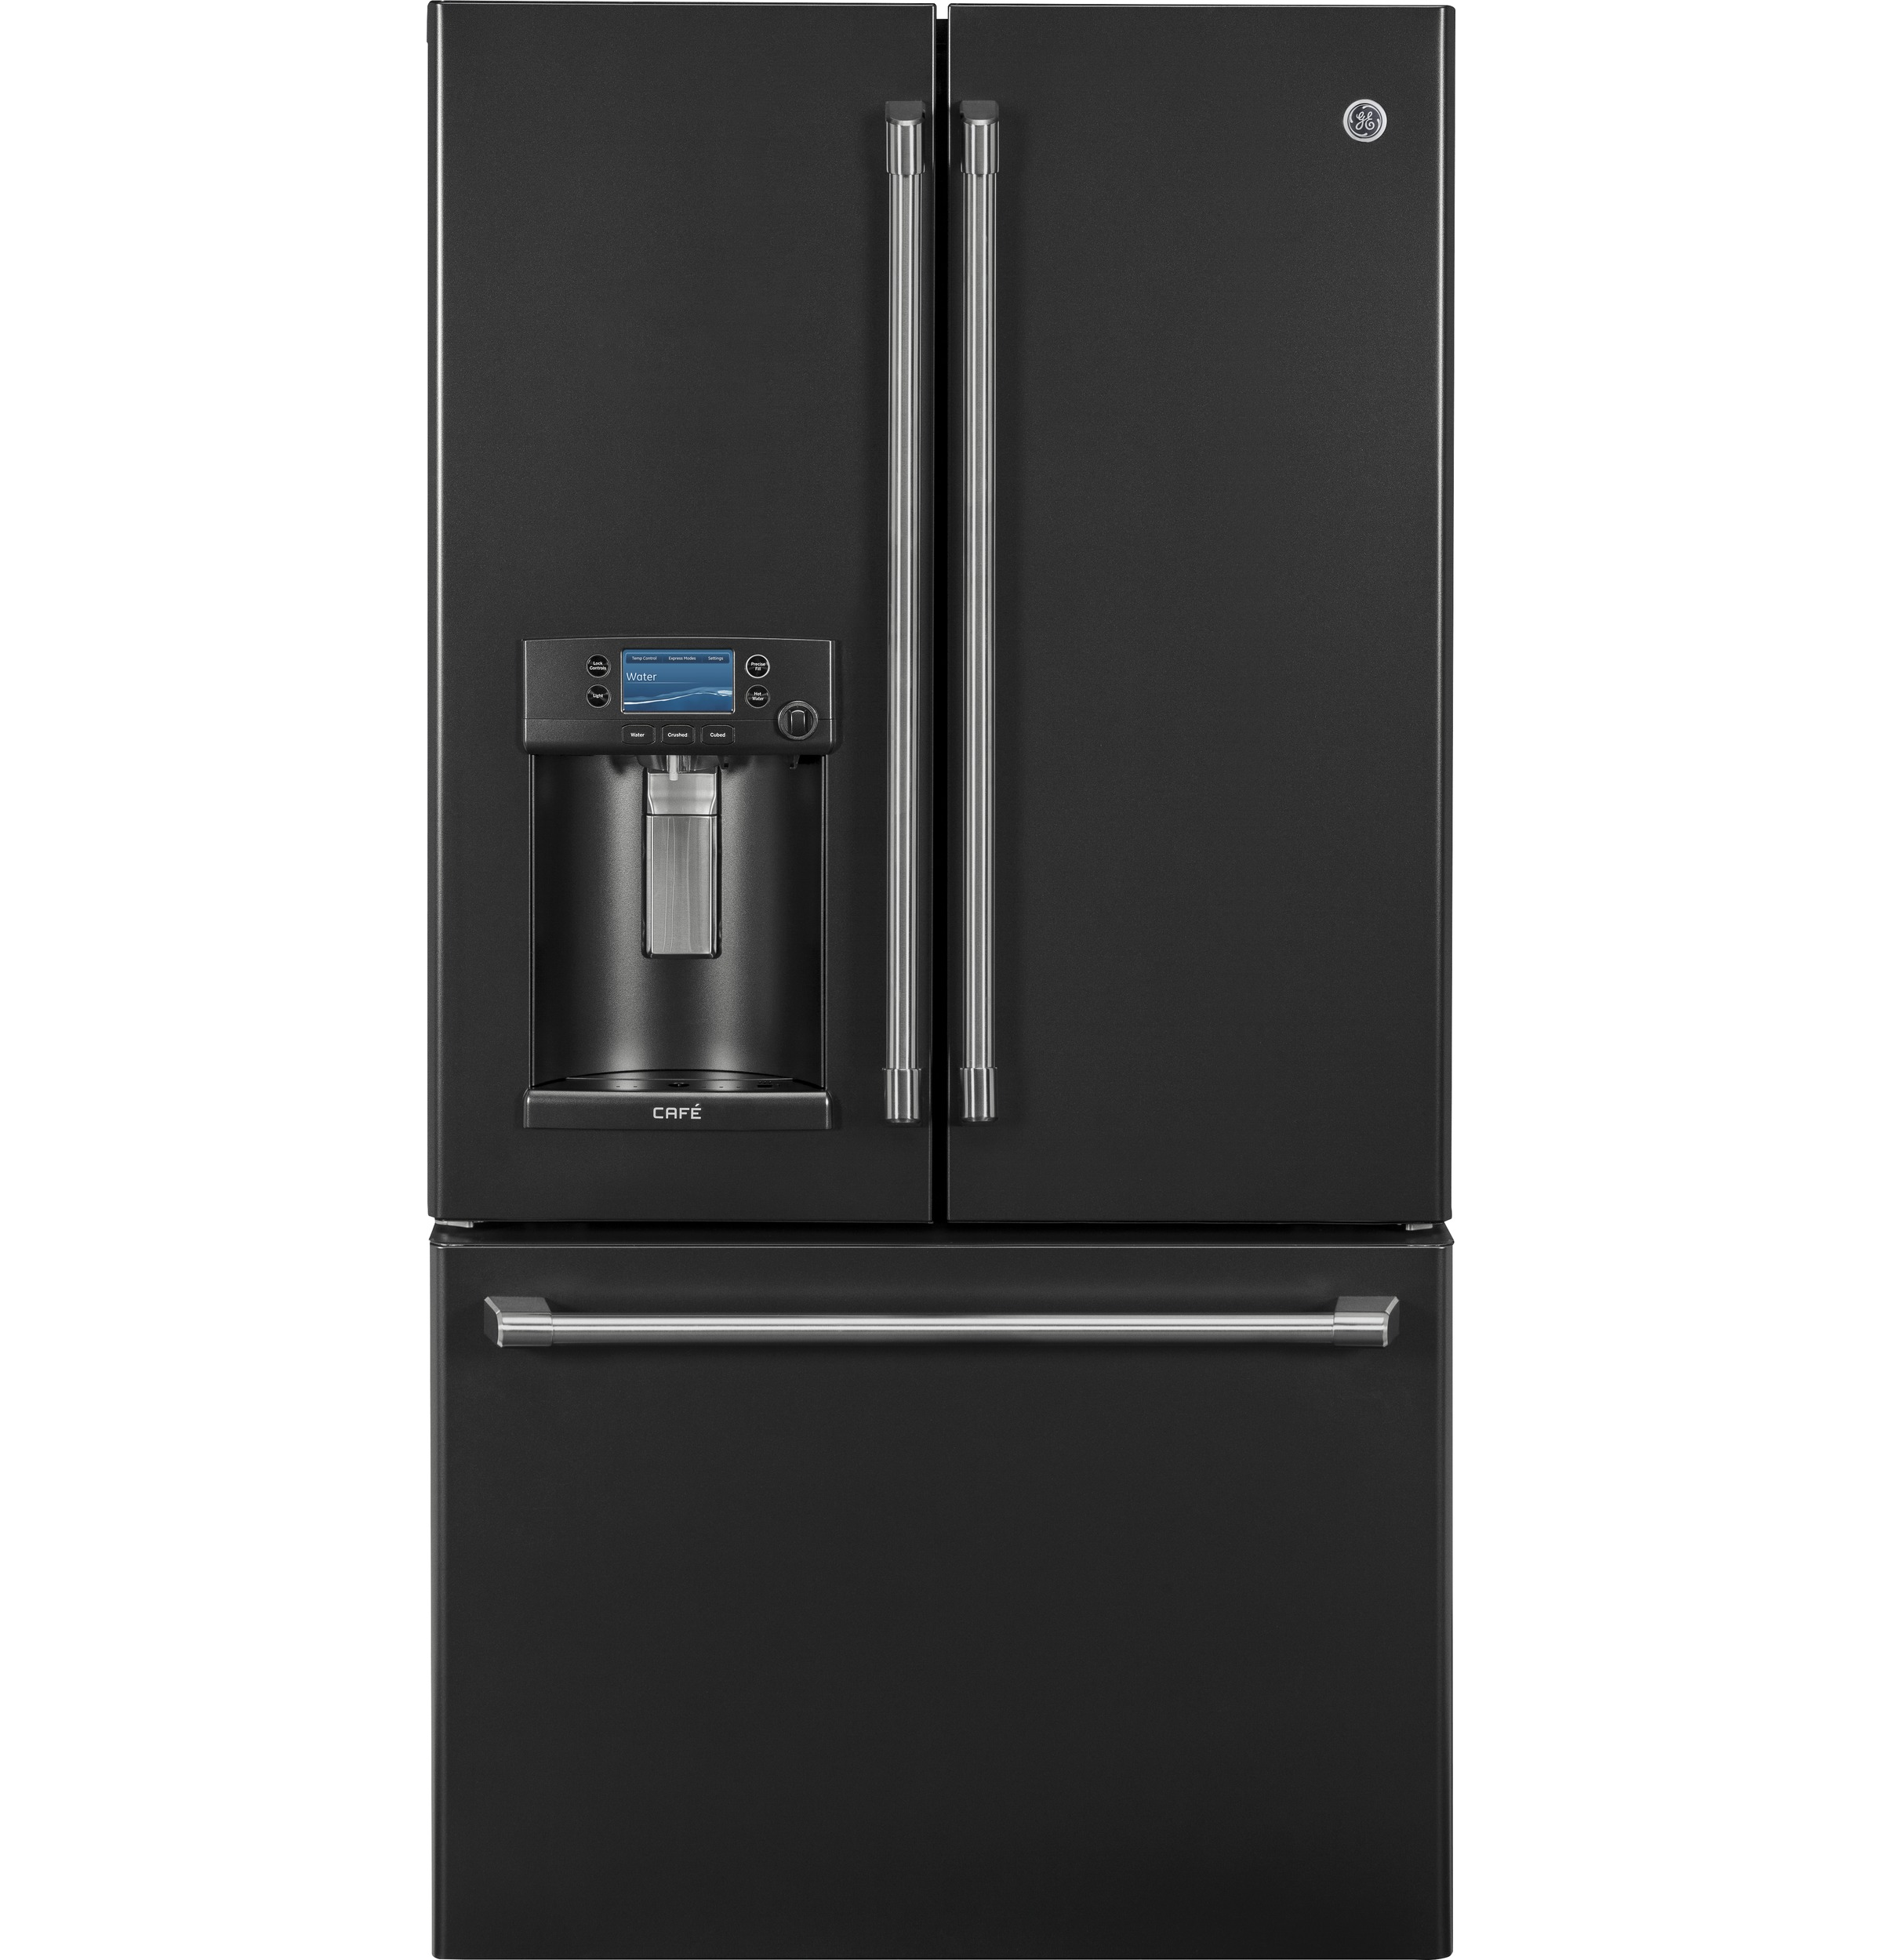 GE Cafe™ Series 22.2 Cu. Ft. Counter Depth French Door Refrigerator Black  Slate CYE22UELDS